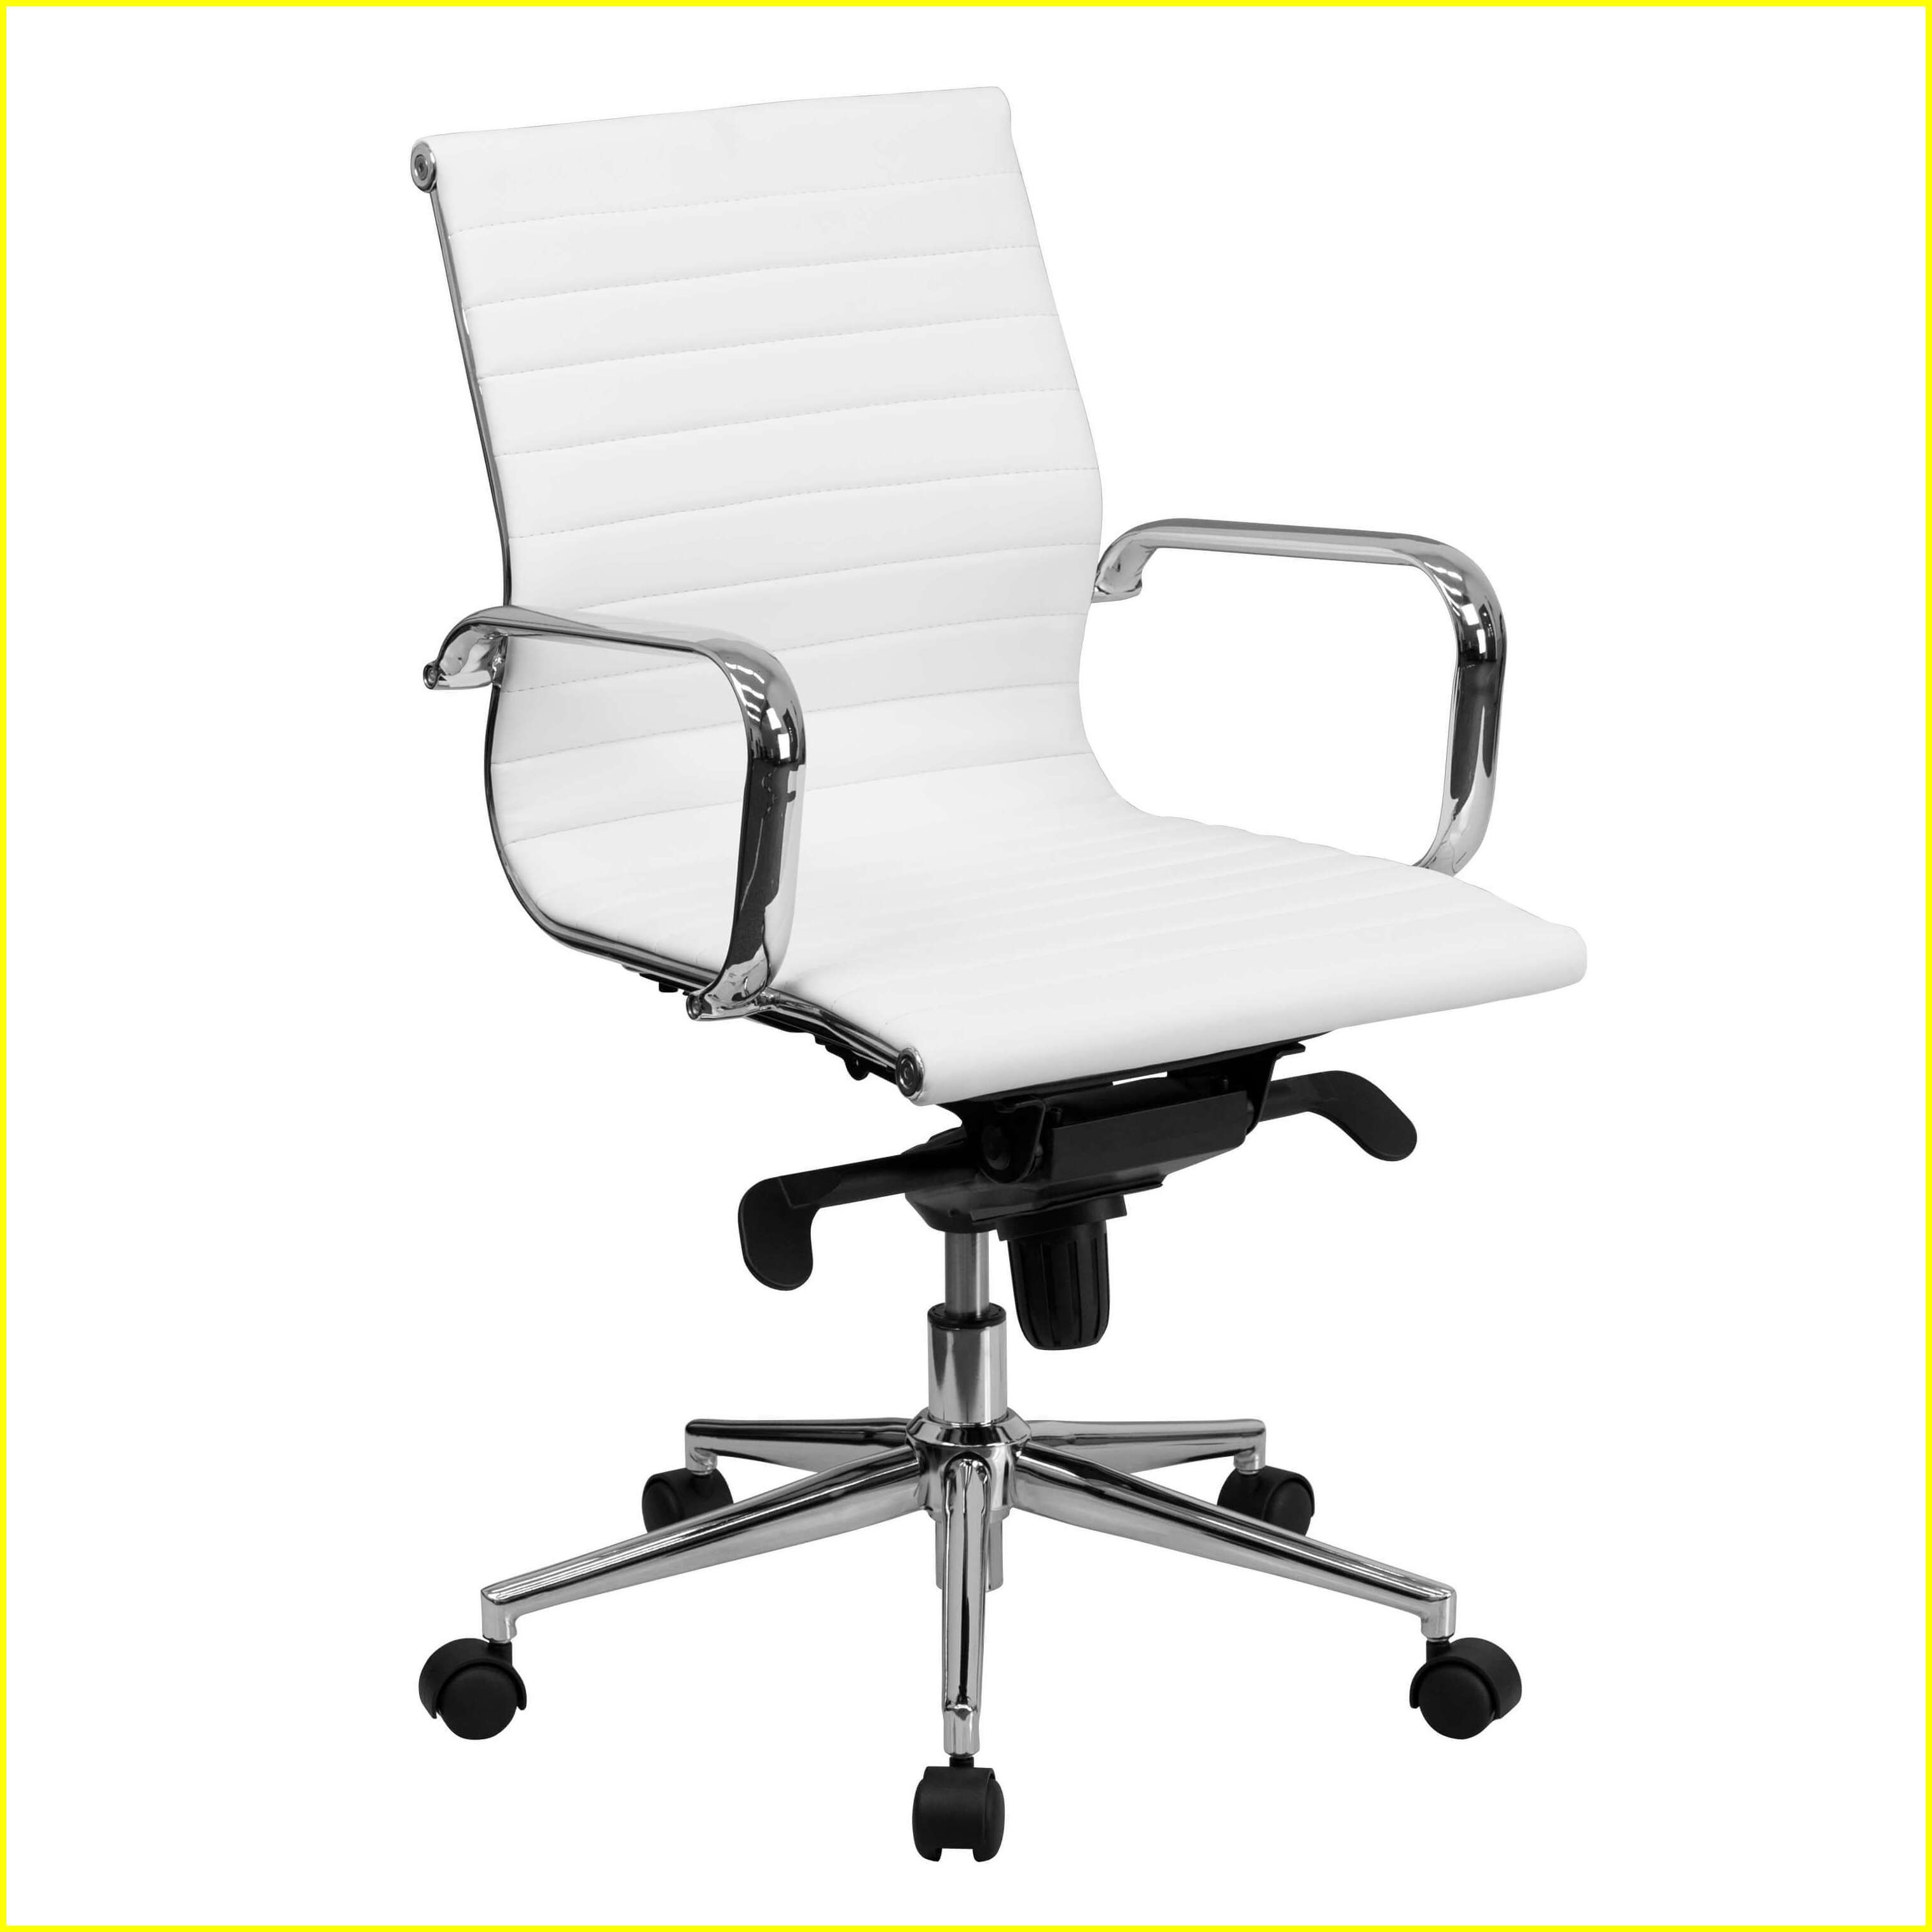 50 Reference Of Cool Desk Chair No Wheels In 2020 White Office Chair Leather Office Chair Conference Chairs